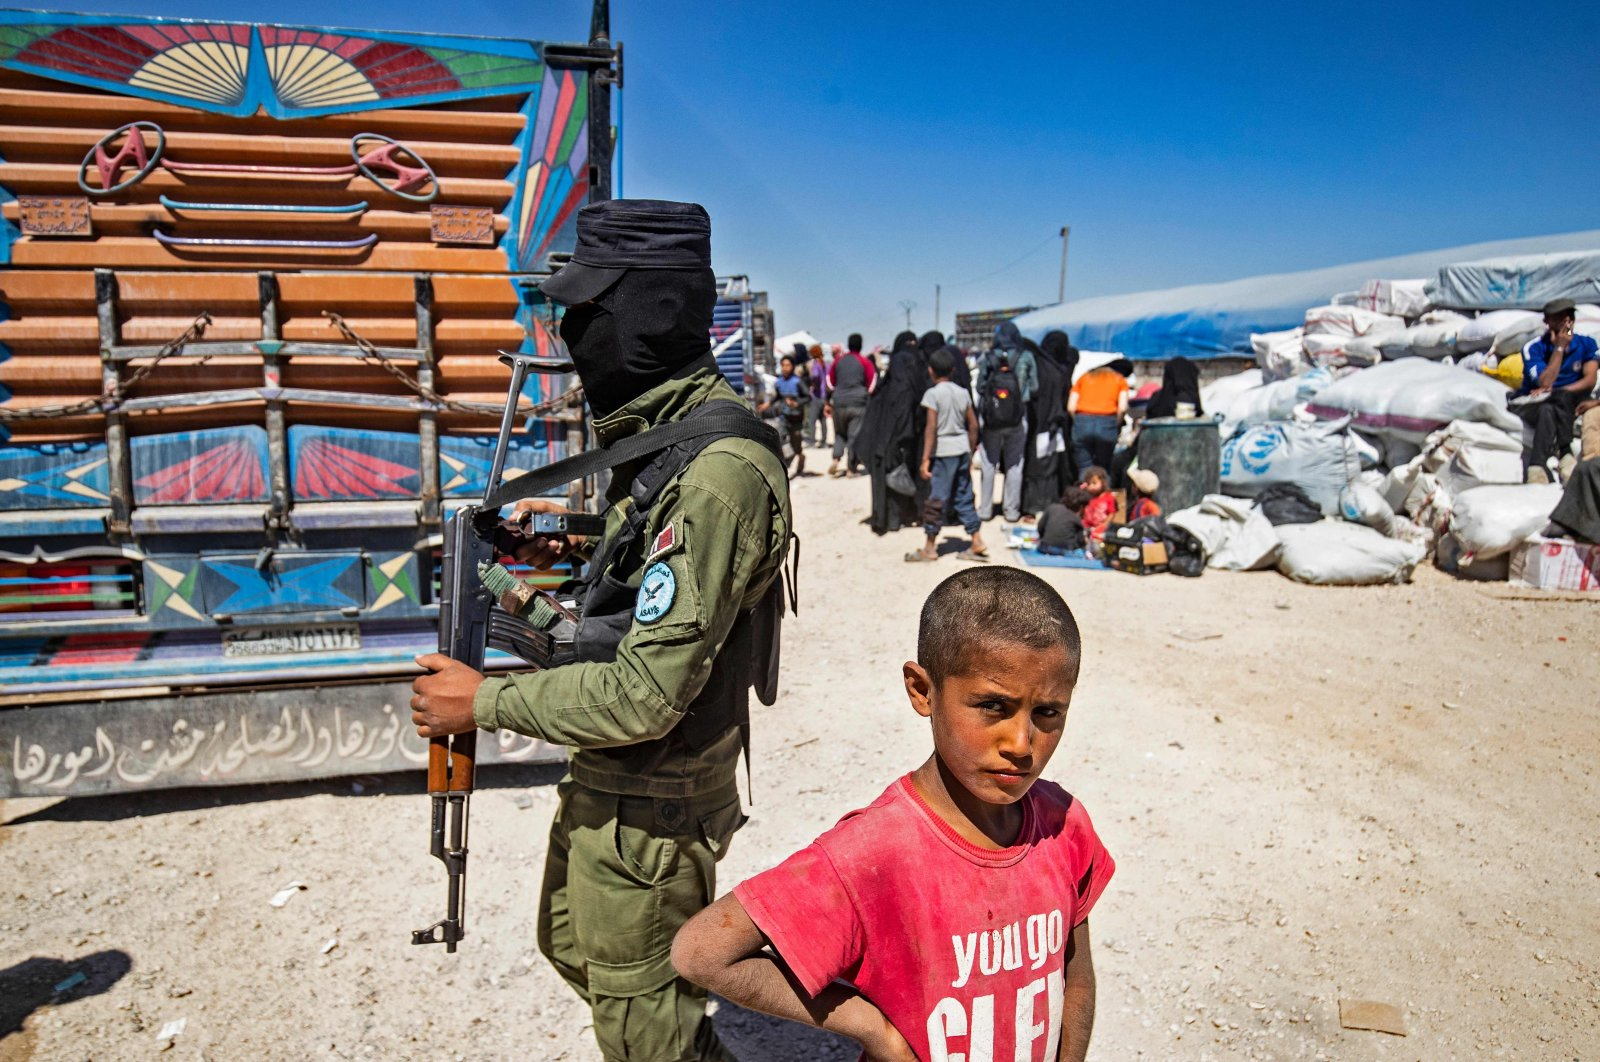 A boy stands next to a YPG terrorist amid preparations for departure as another group of Syrian families is released from the al-Hol camp in the northeastern Hassakeh governorate, Syria, on May 11, 2021. (AFP Photo)